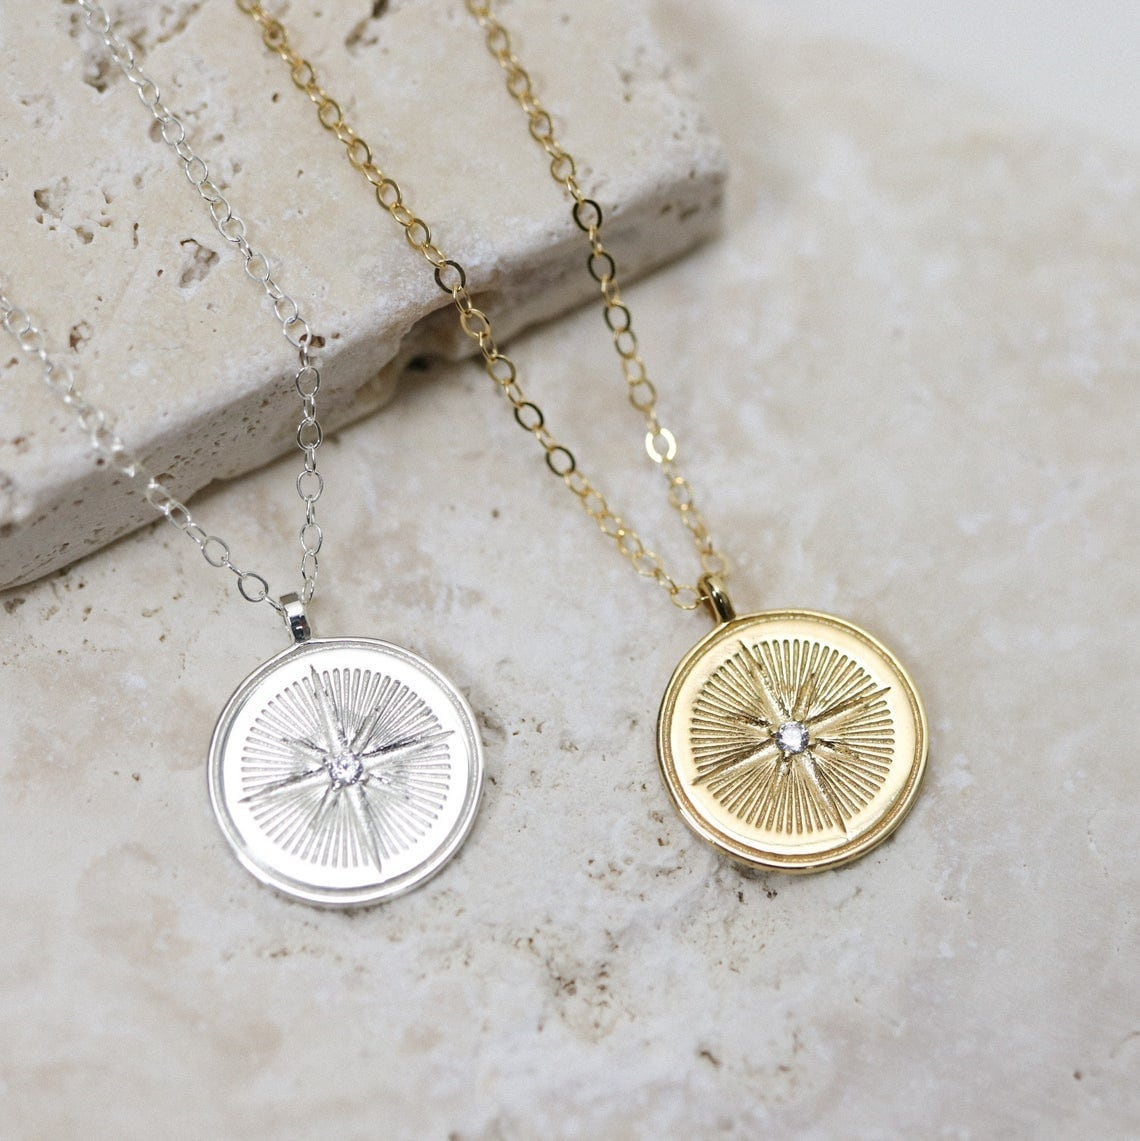 North Star coin necklaces from EVREN